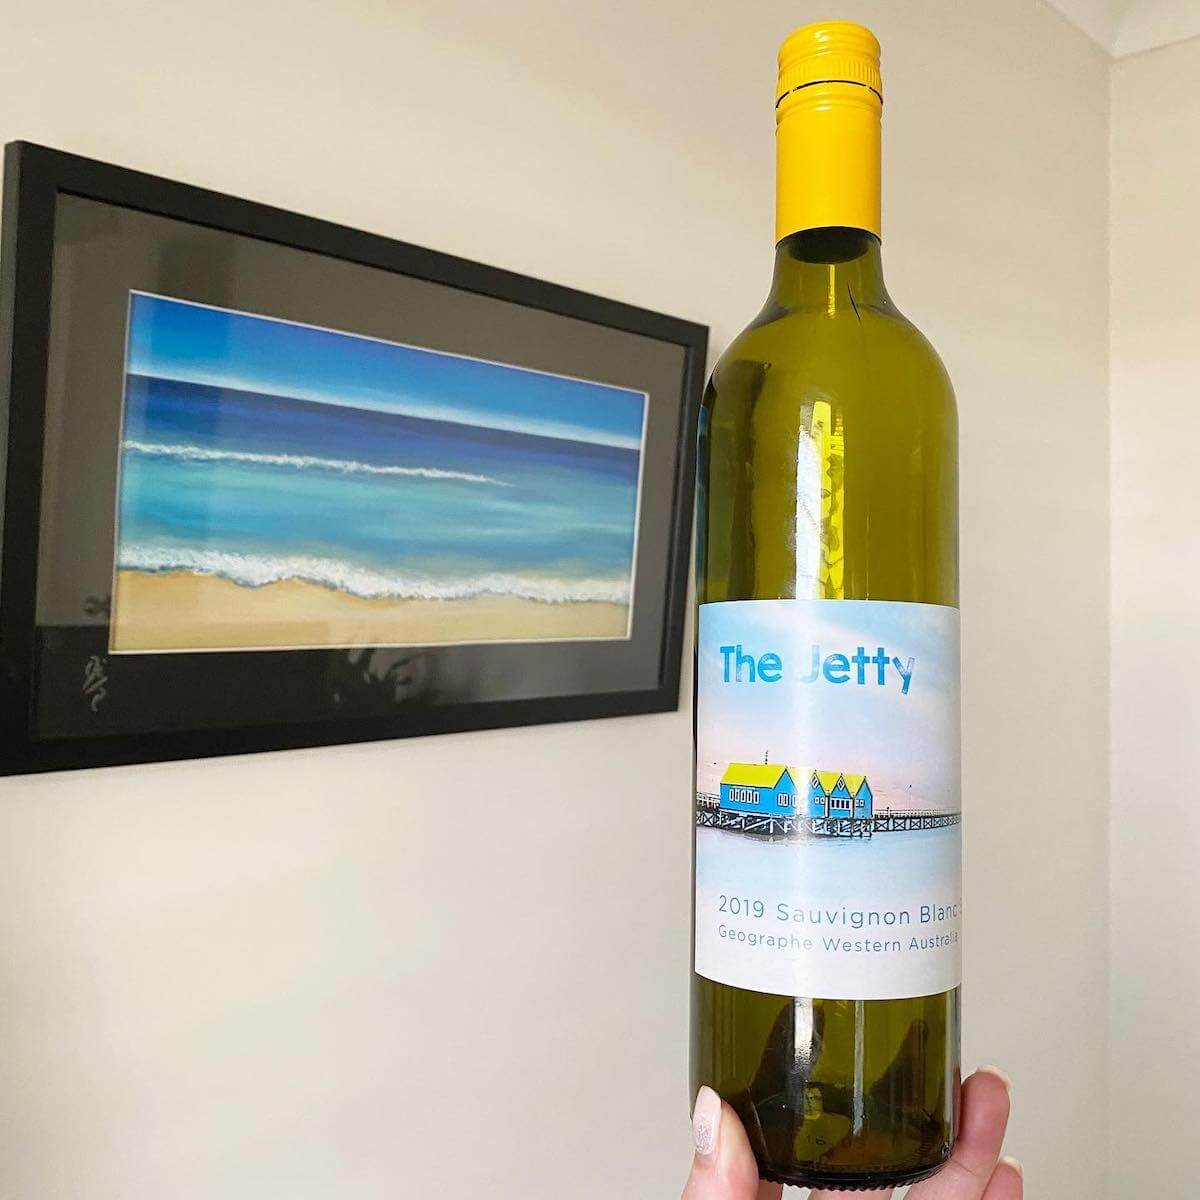 The Jetty 2019 Sauvignon Blanc (Whicher Ridge Wines)